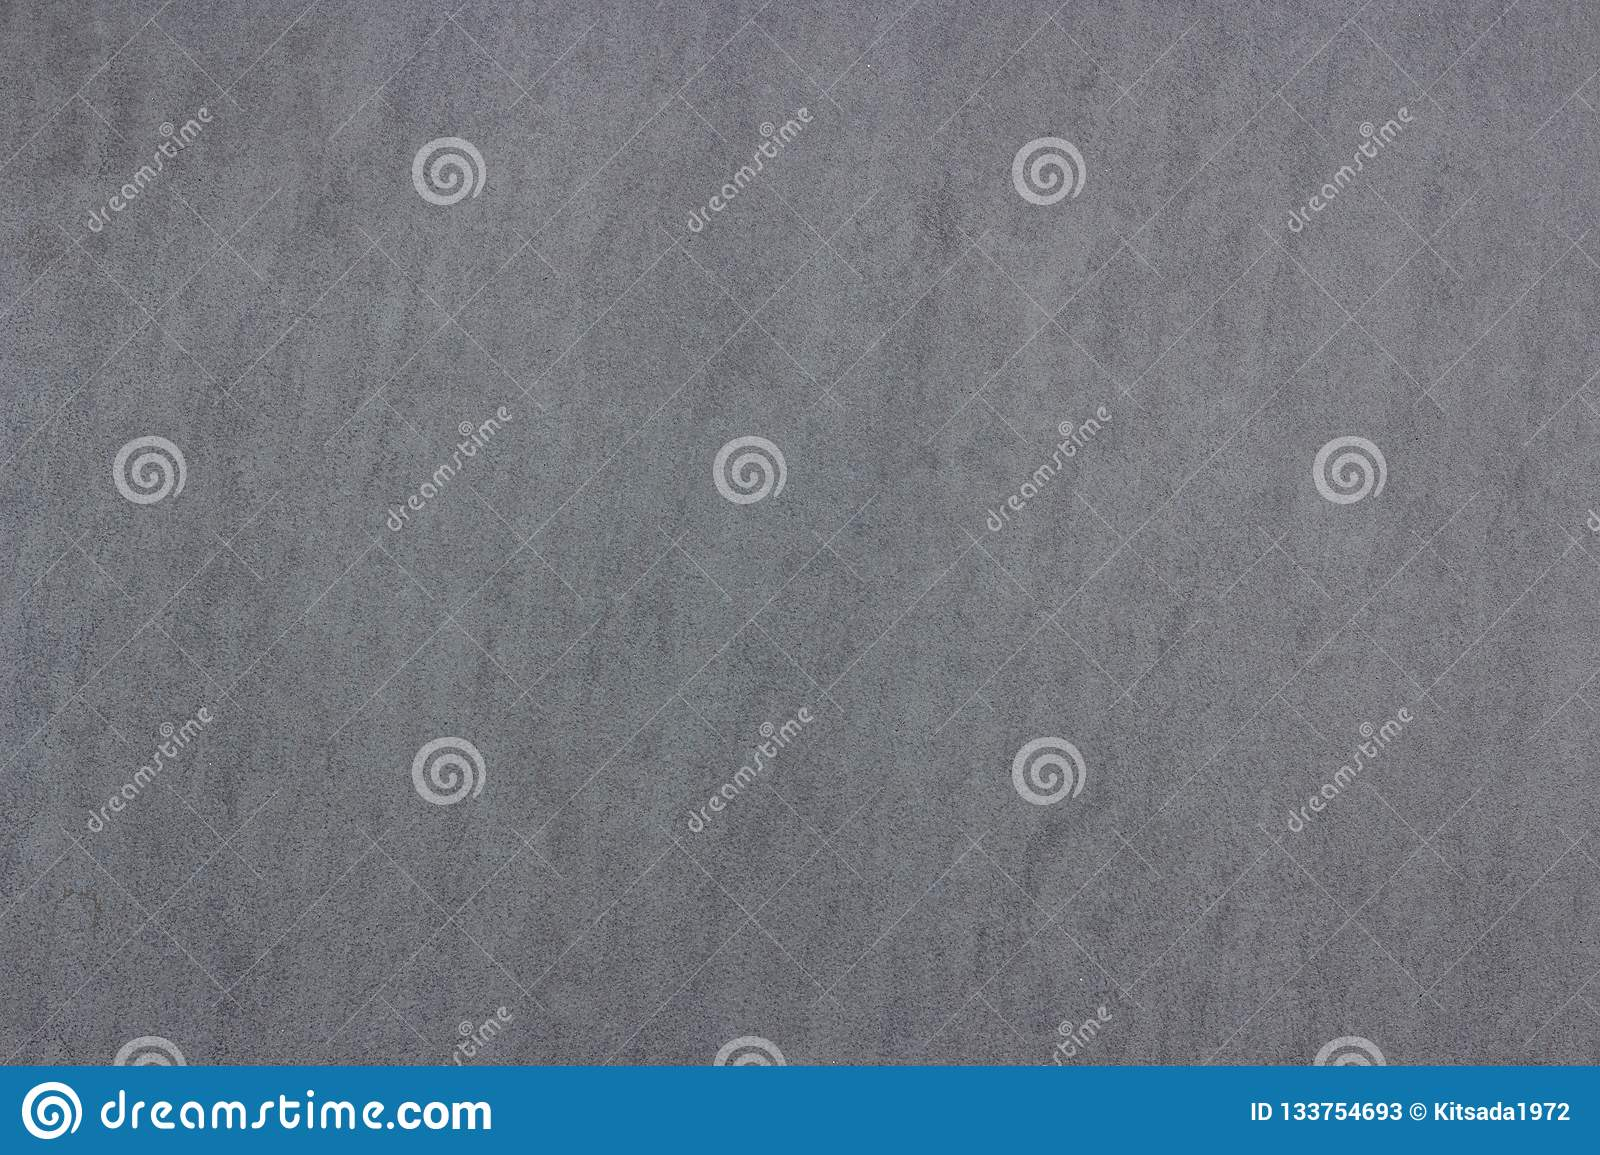 Abstract nature marble texture,marble pattern for background